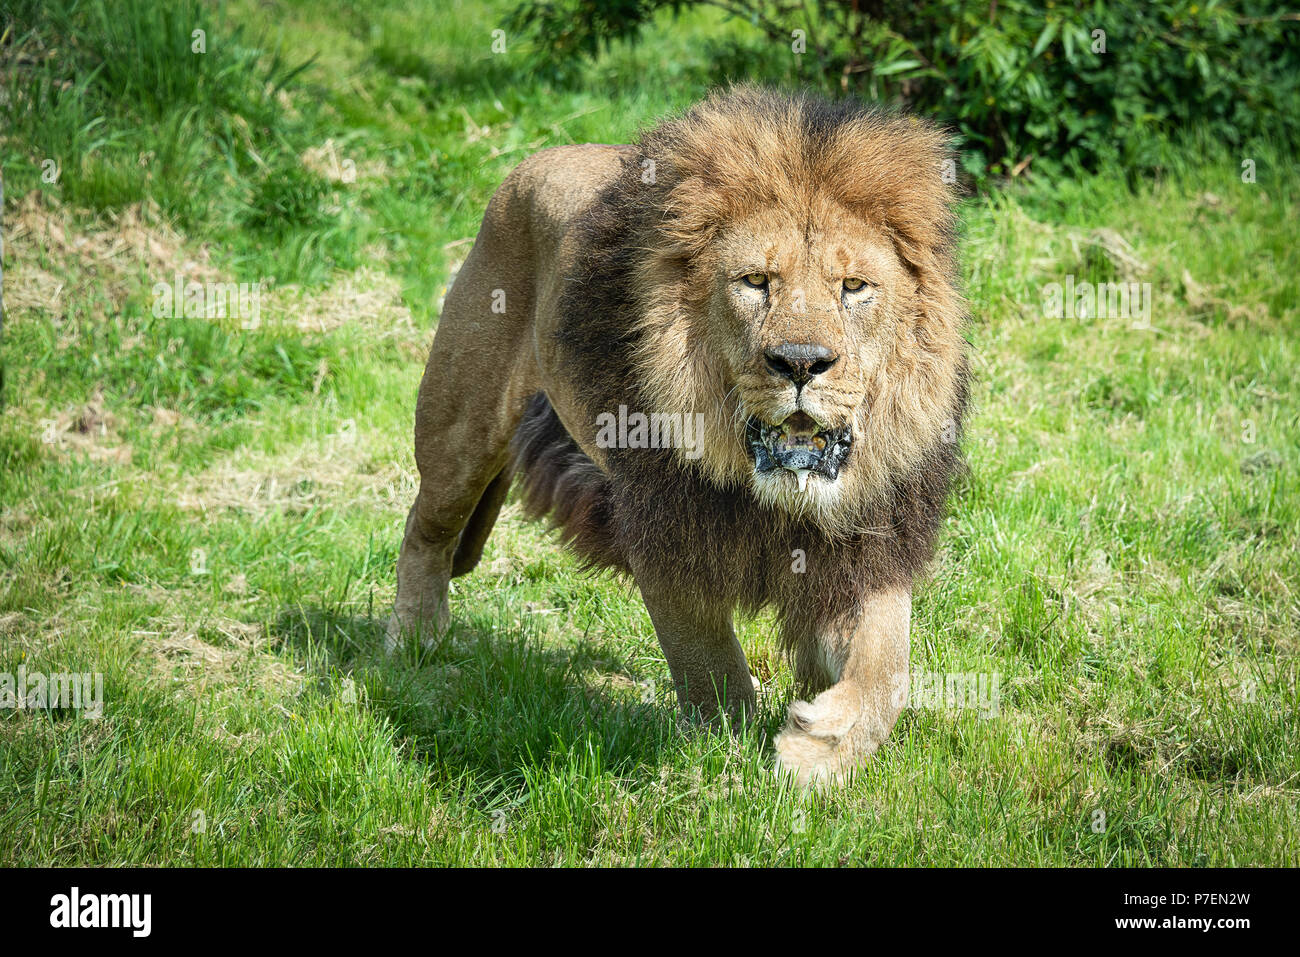 A close image of a lion prowling  walking and staring forward at the camera with a frothing open mouth - Stock Image